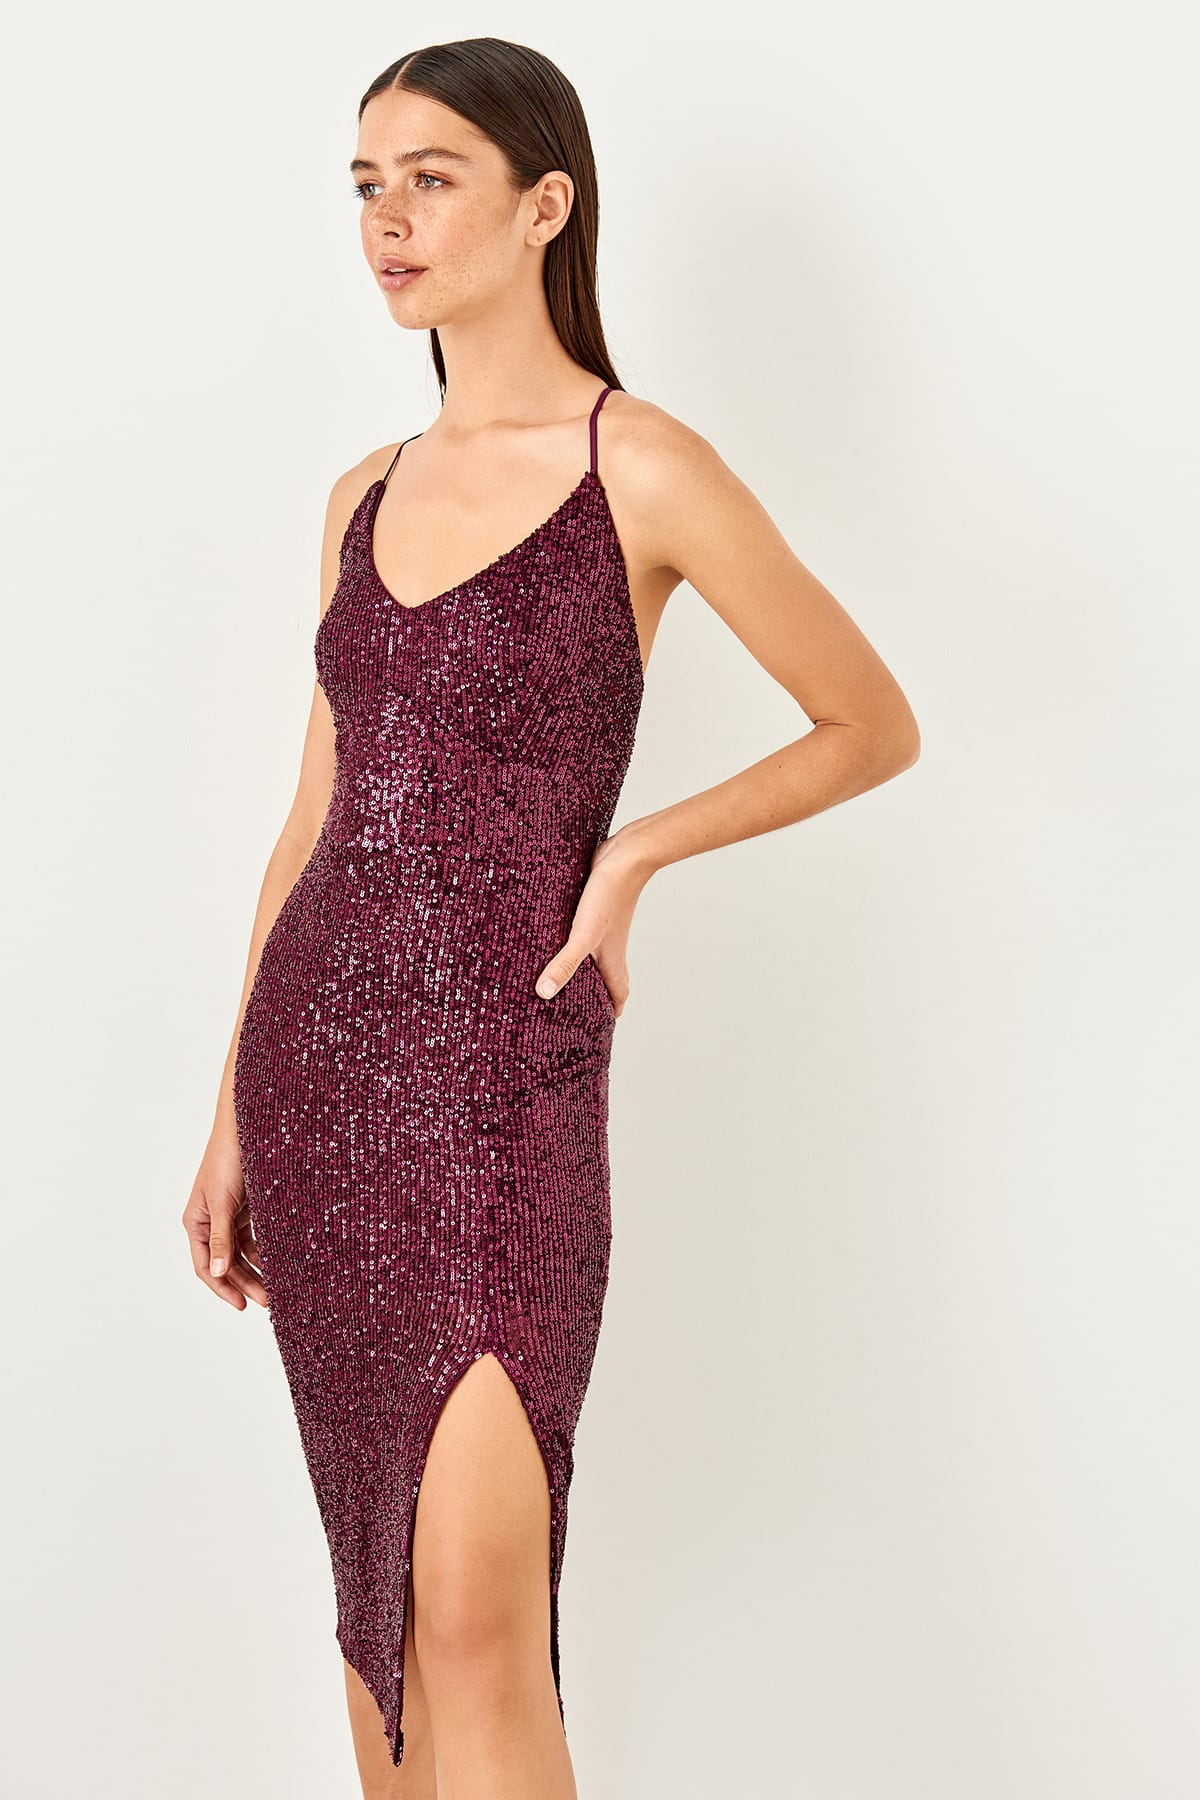 Trendyol Sequined Halter Evening Dress TPRSS19YL0024